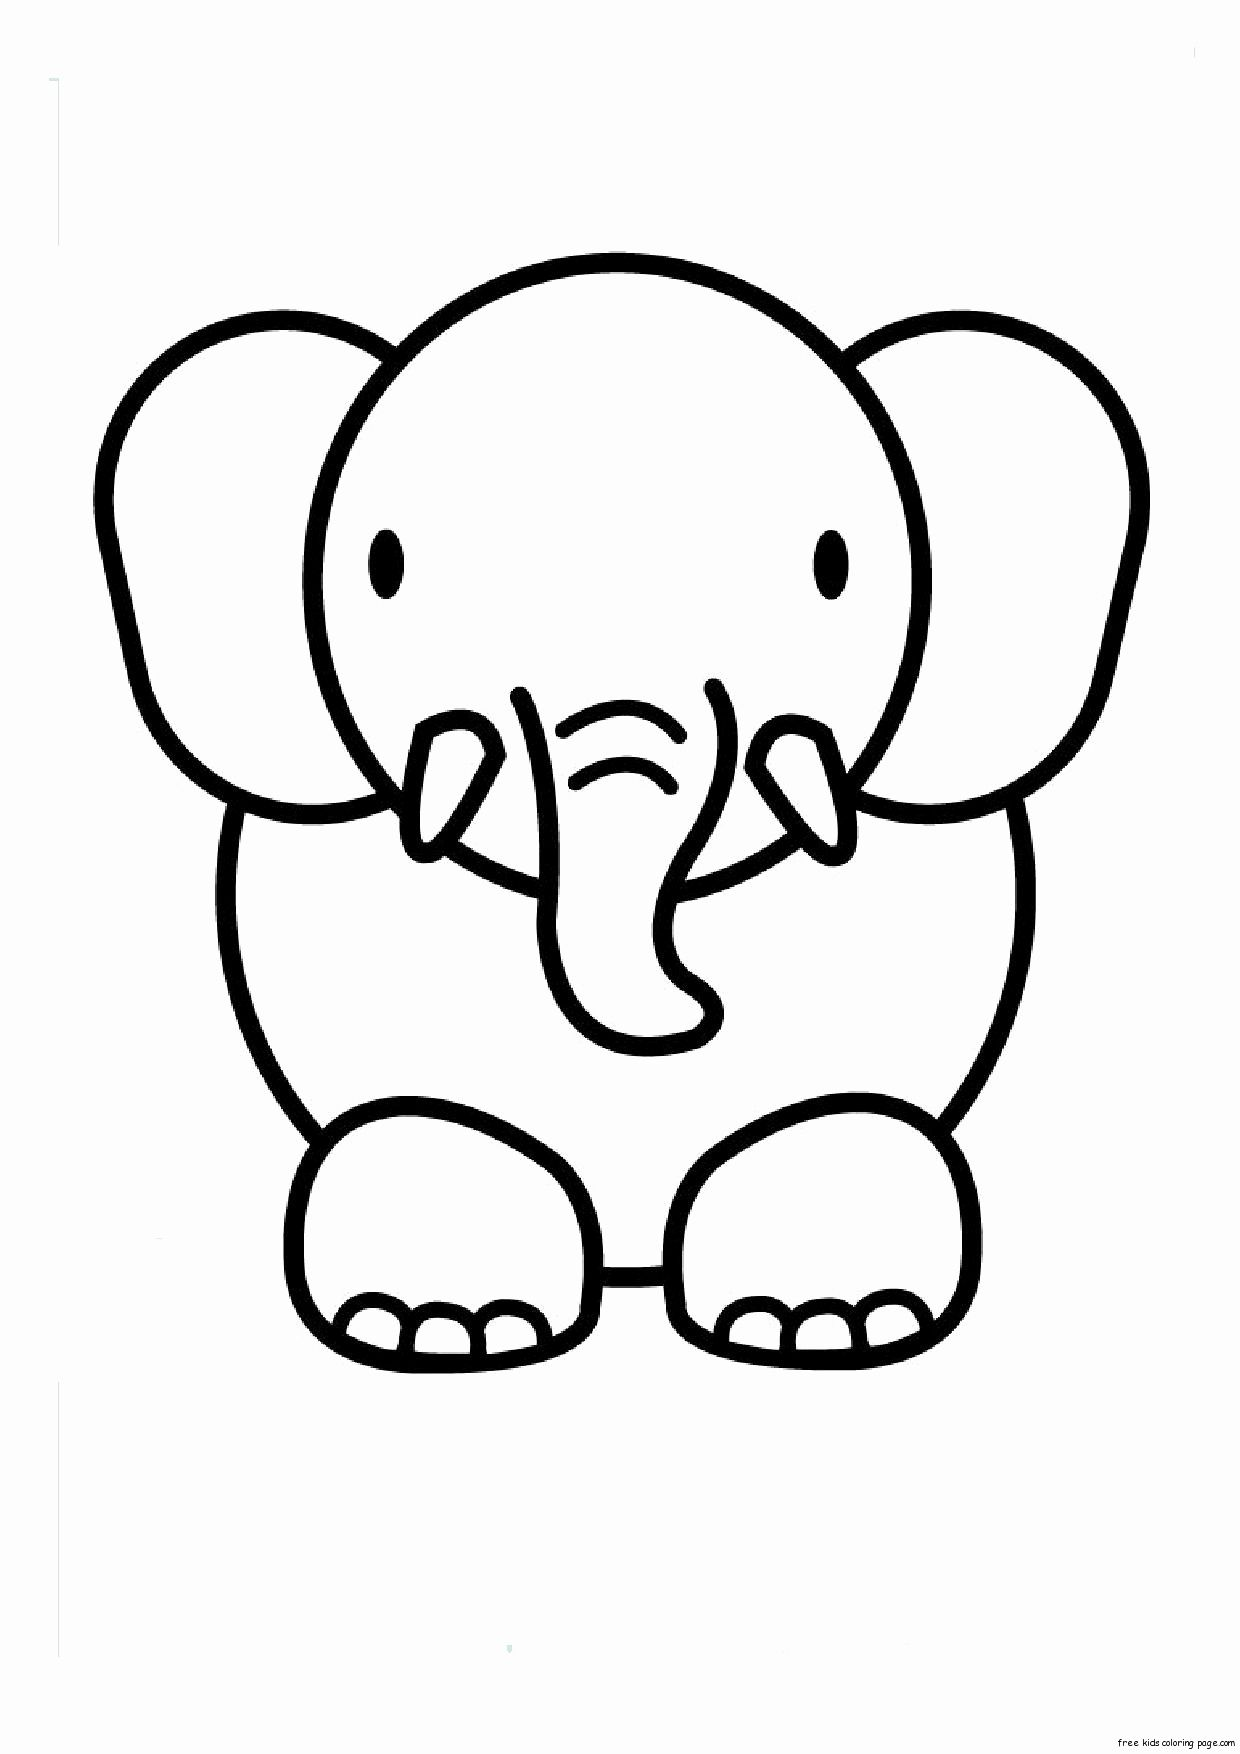 Coloring Pages Of Animal For Kids Cute Easy Animal Drawings Animal Coloring Books Cute Animal Drawings